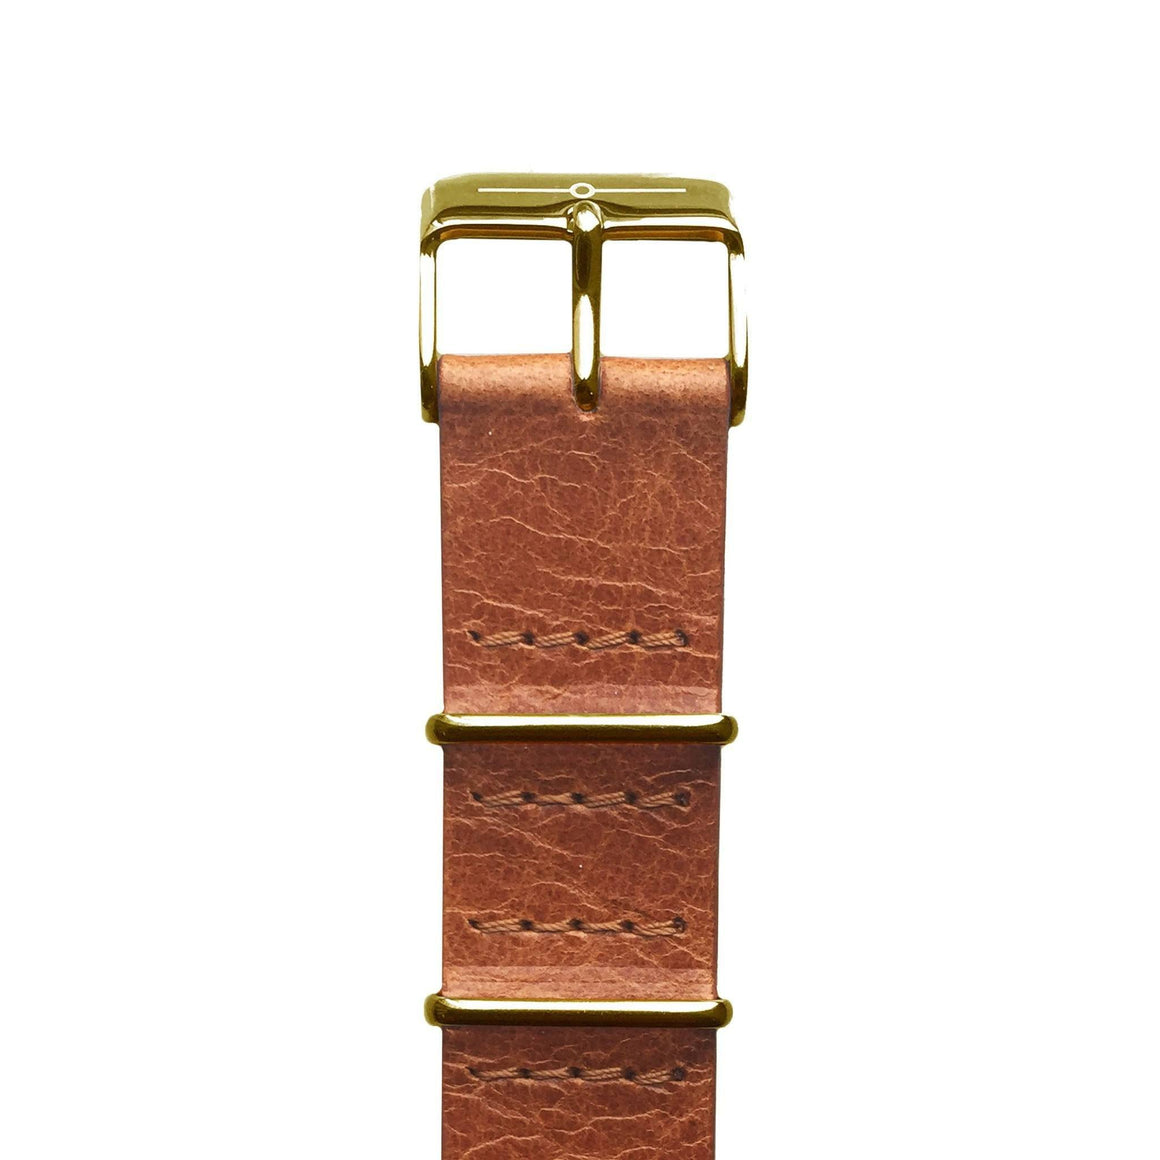 Strap - Tan Leather And Gold NATO